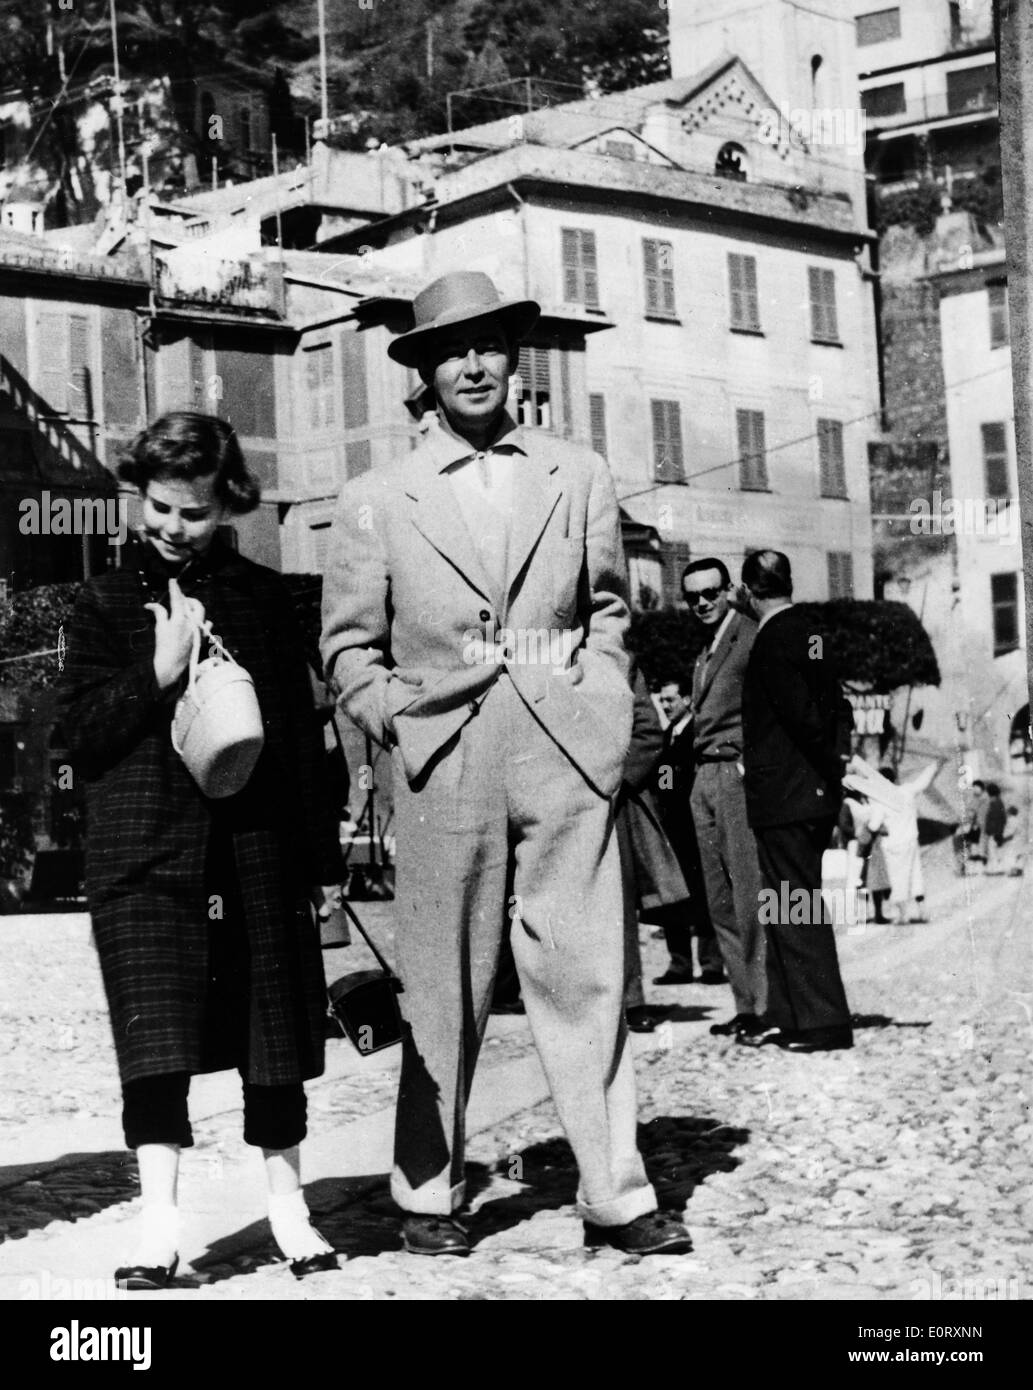 Actor Alan Ladd walking with wife Sue Carol - Stock Image